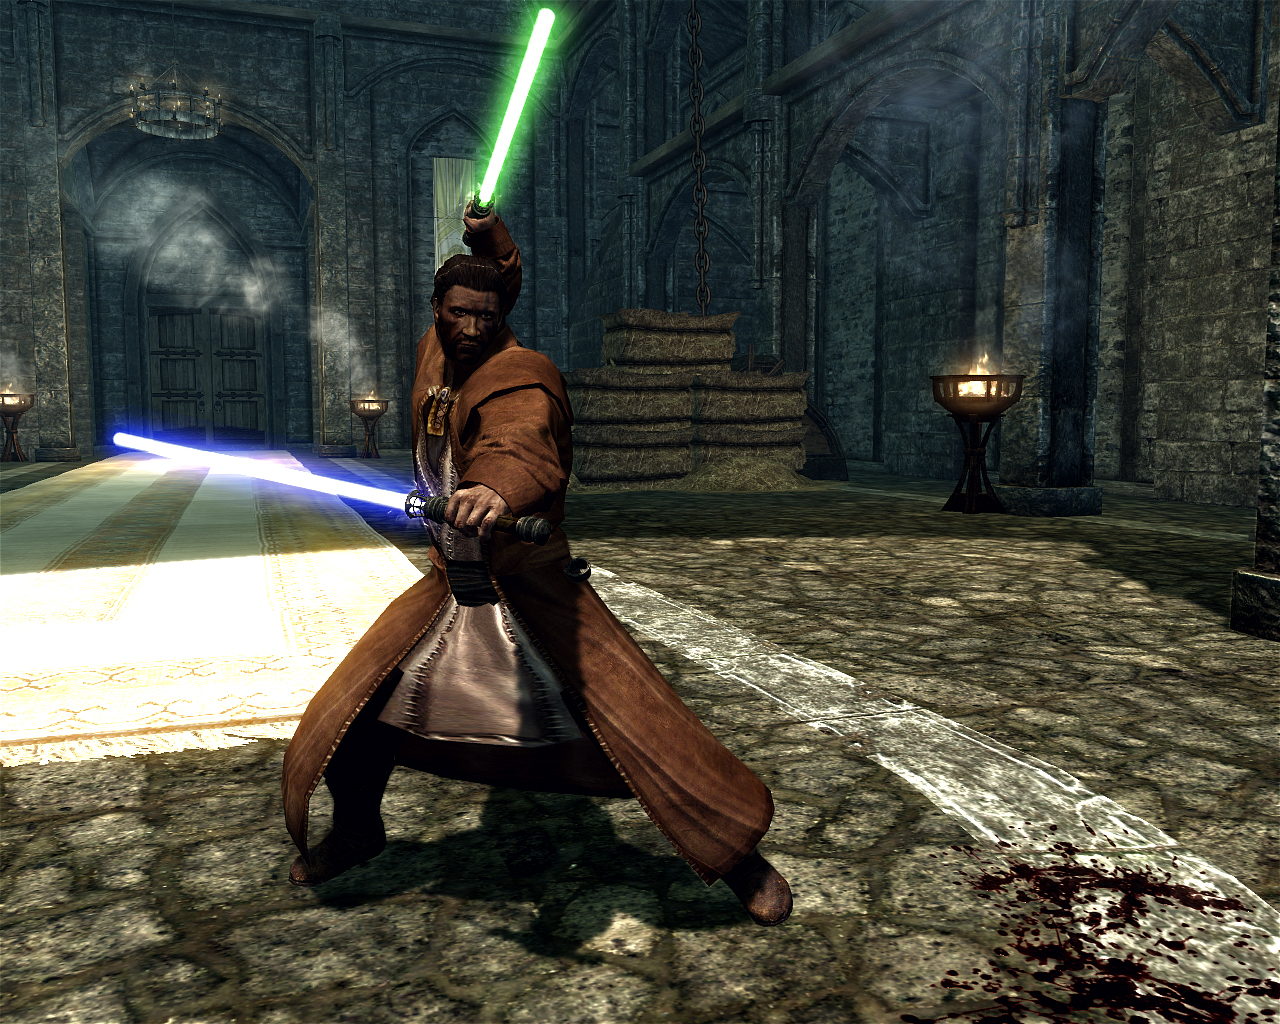 Jedi Robes skyrim mod